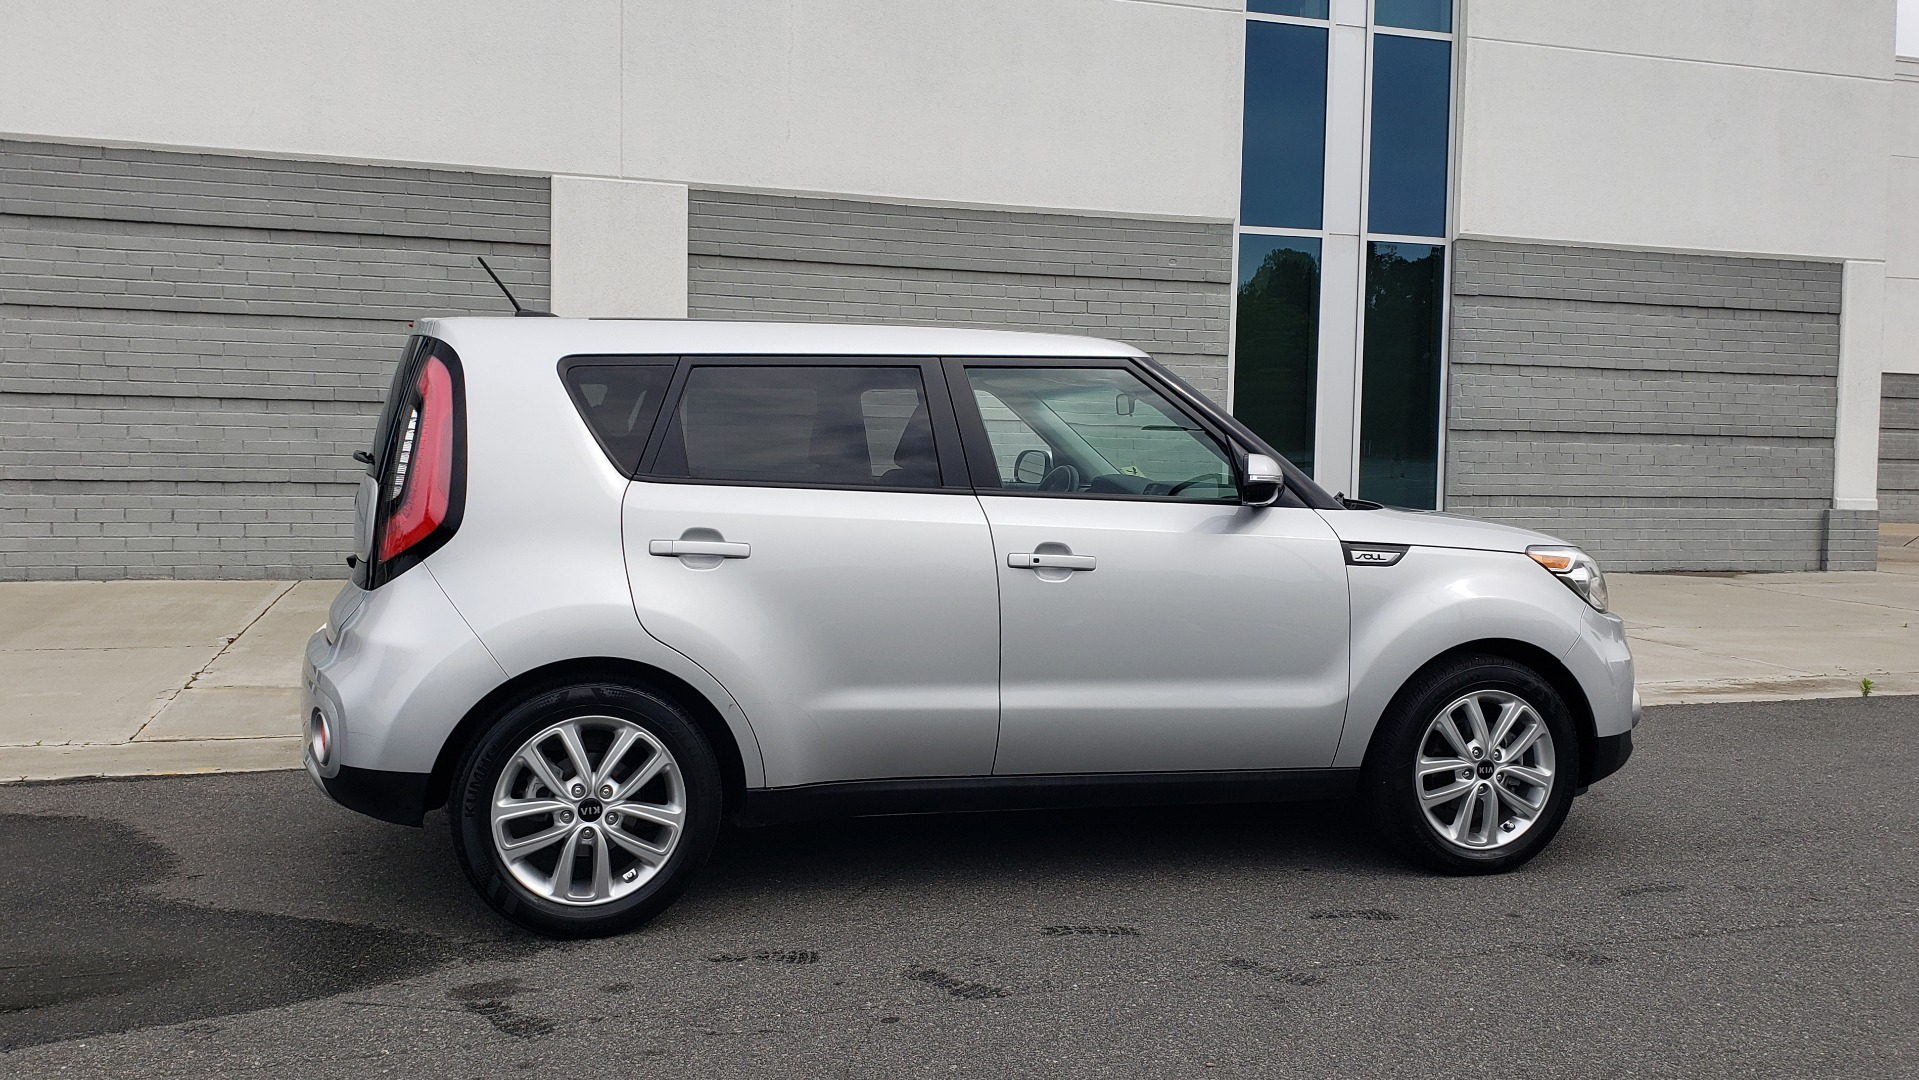 Used 2017 Kia SOUL PLUS / NAV / SUNROOF / LEATHER / HTD STS / REARVIEW for sale $16,995 at Formula Imports in Charlotte NC 28227 3